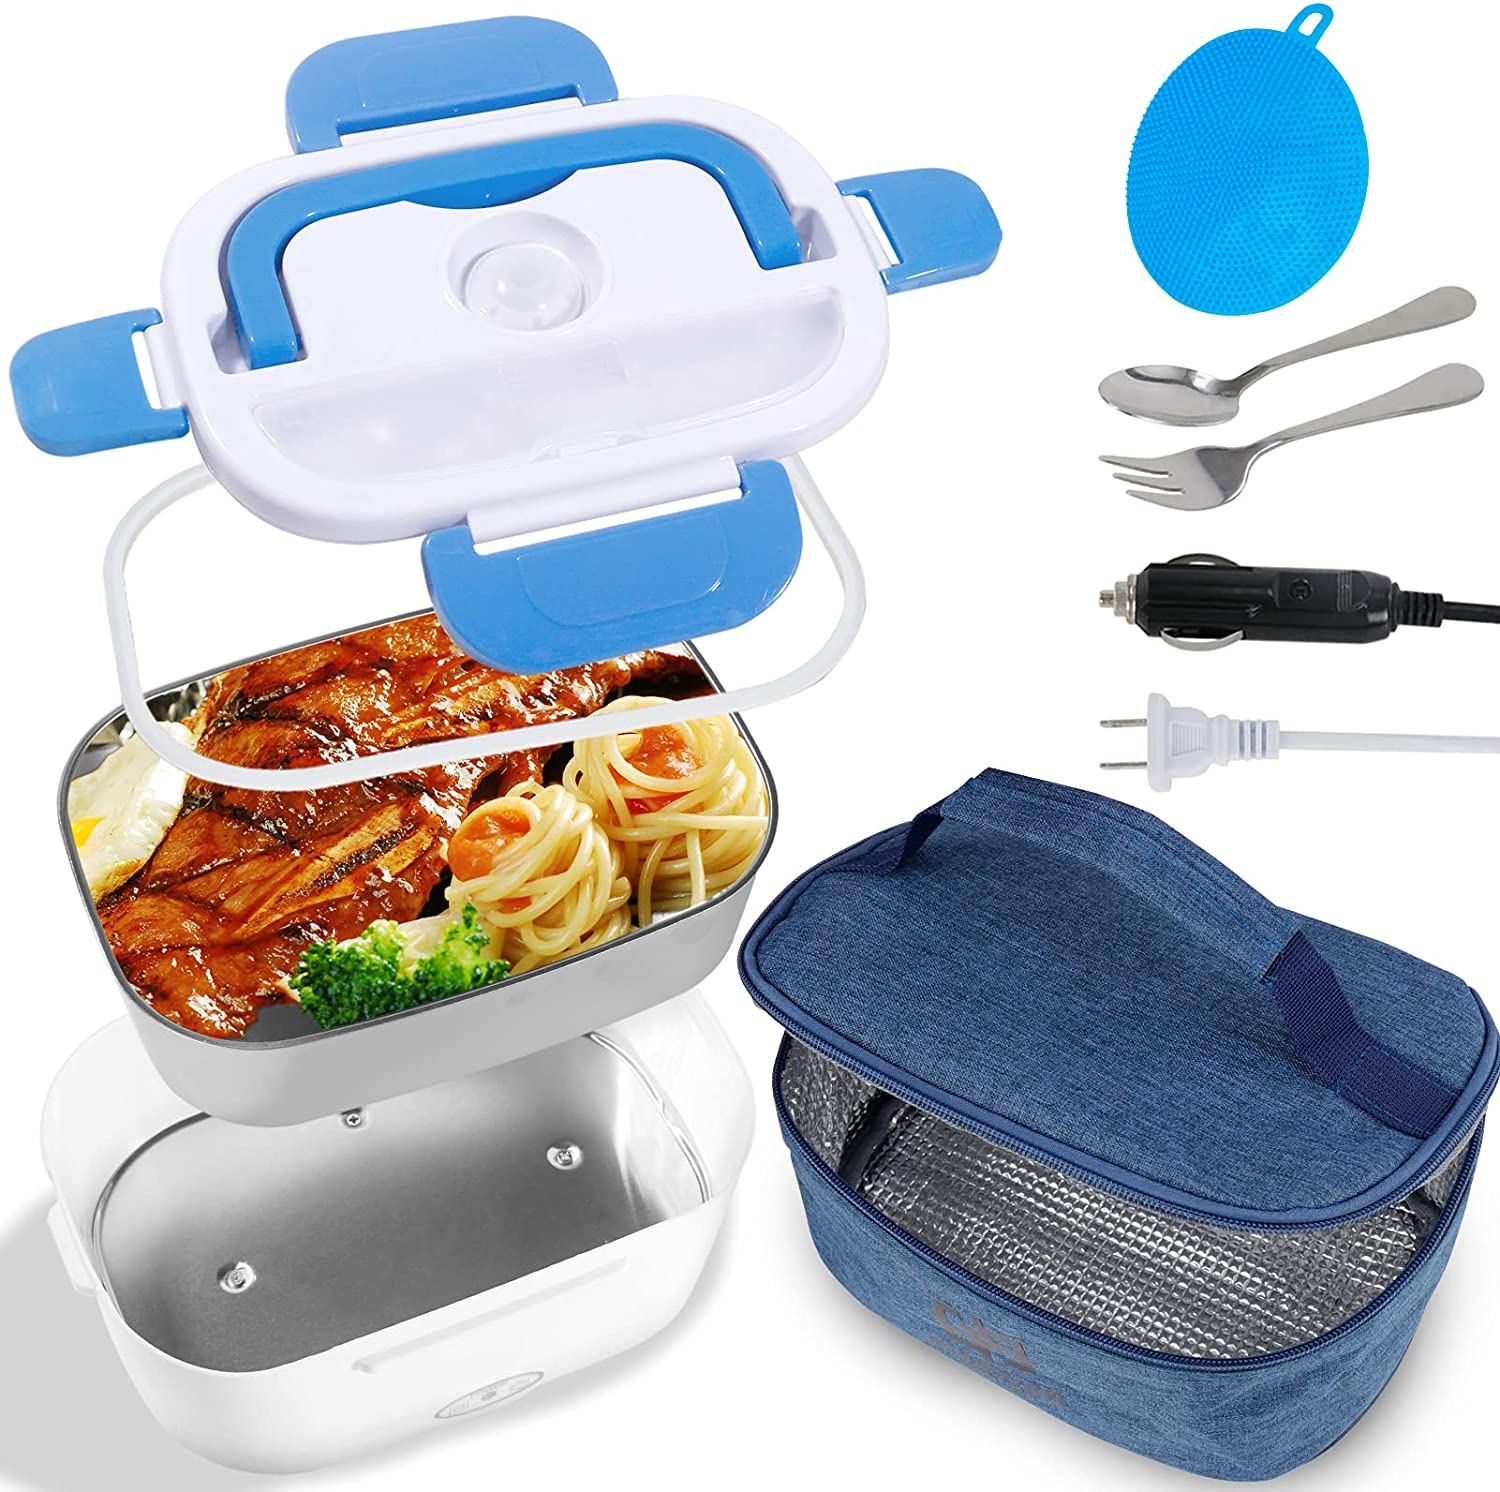 Electric Lunch Box for Car and Home, Self Heating Lunch Box Portable Microwave, Heated Lunch Boxes for Adults Work 12V 24V Hot Heatable Portable Food Warmer Heater with Bag Containers